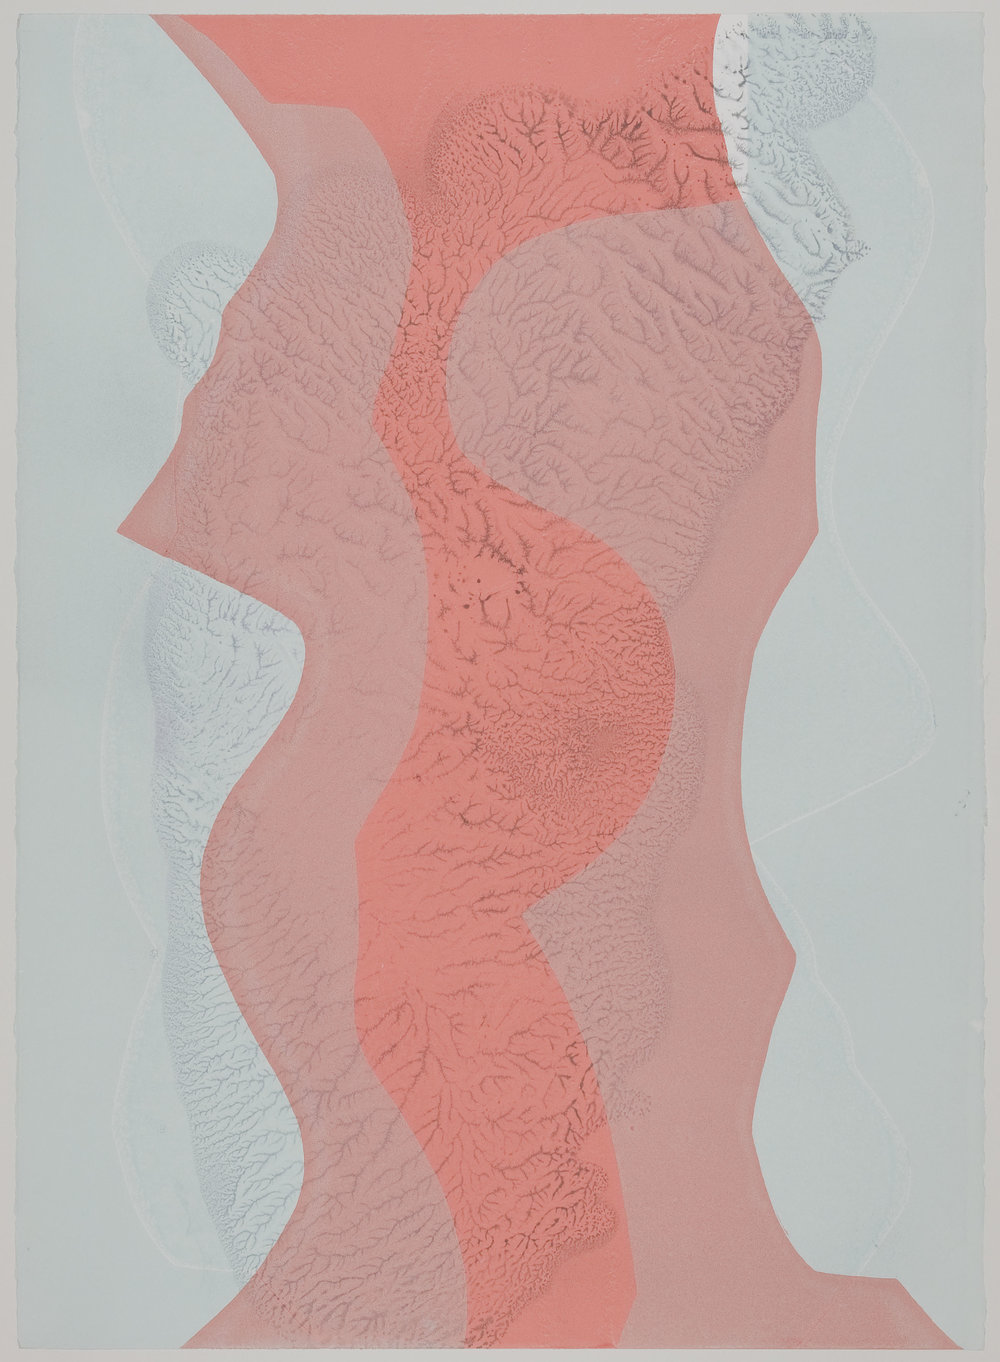 Untitled (VII) , 2012 Monotype Image & Paper: 29 x 21 inches